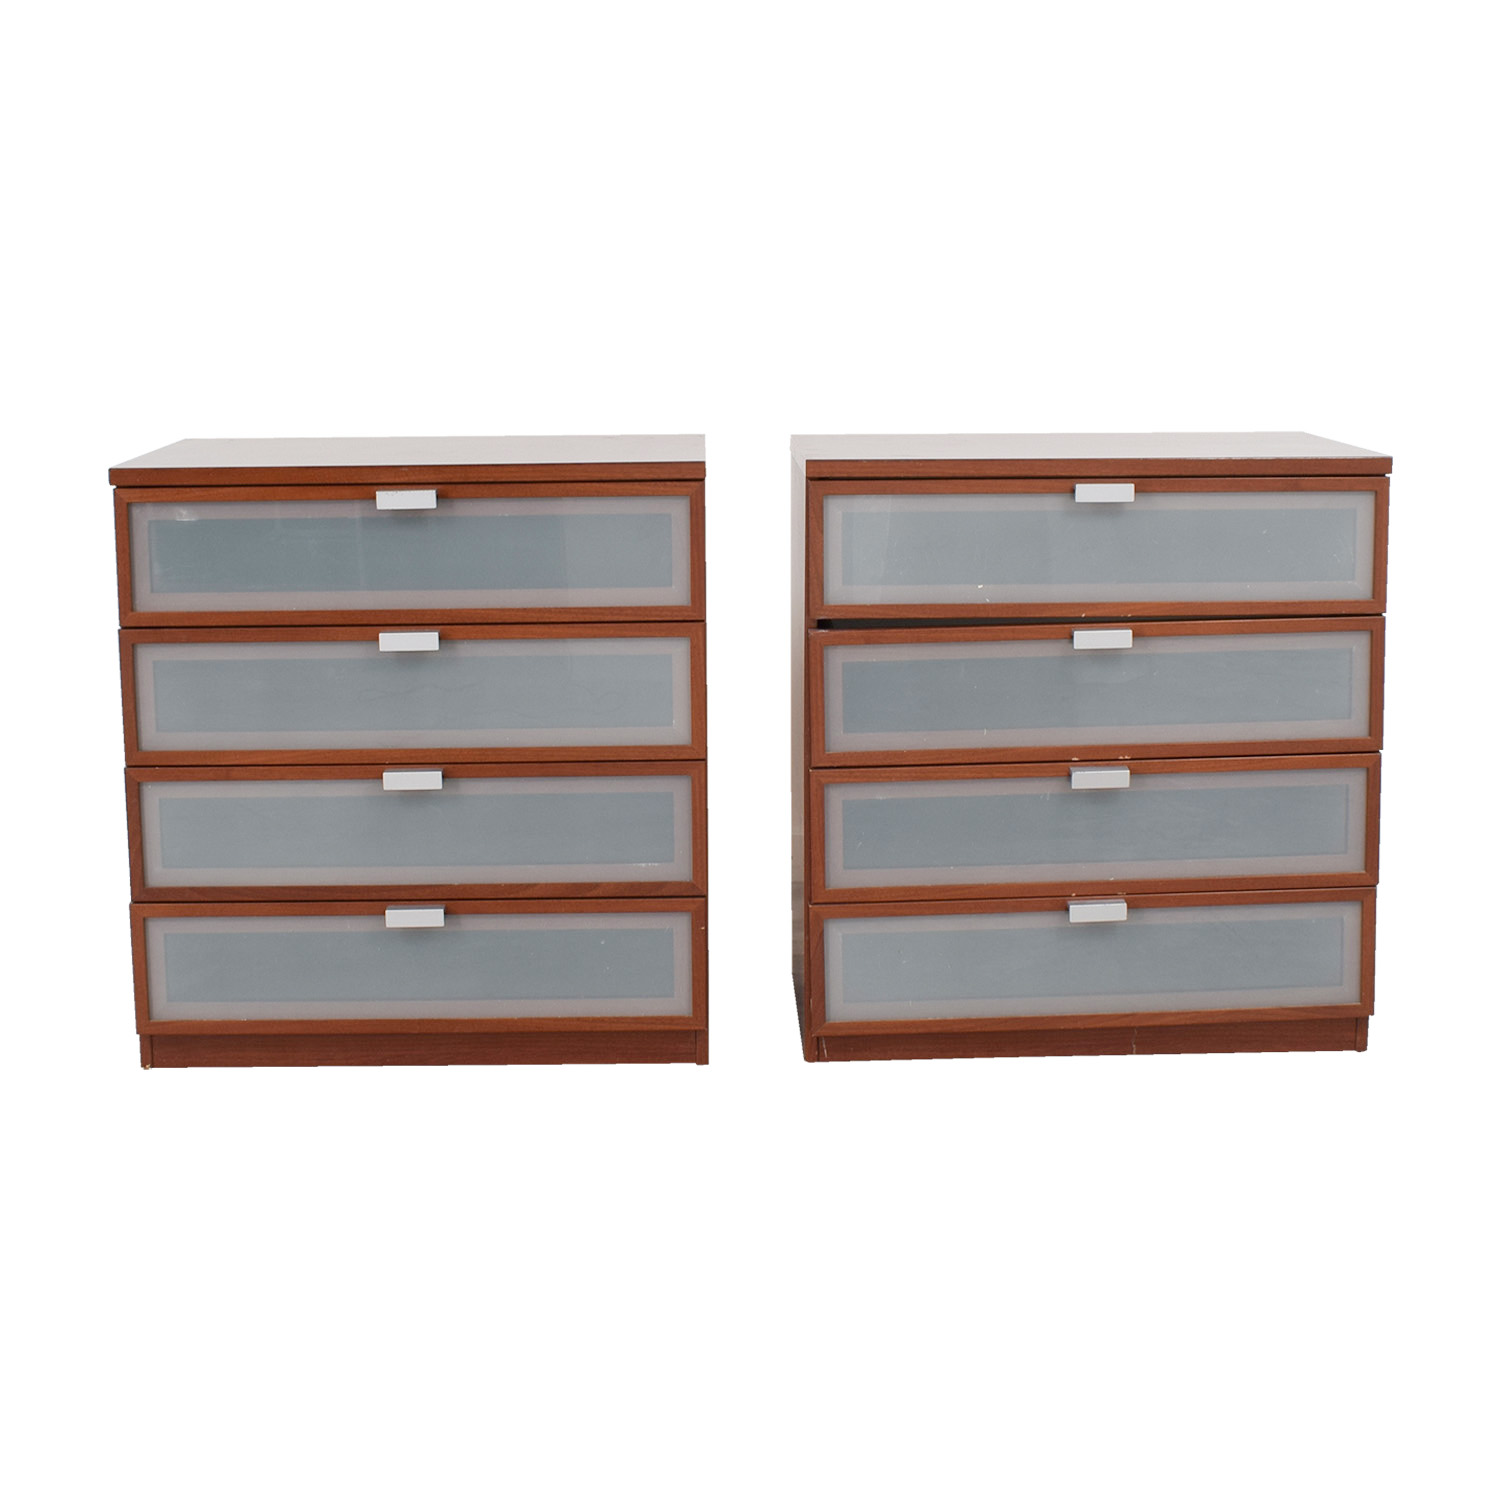 Crate & Barrel Crate & Barrel Wood and Glass Dressers for sale